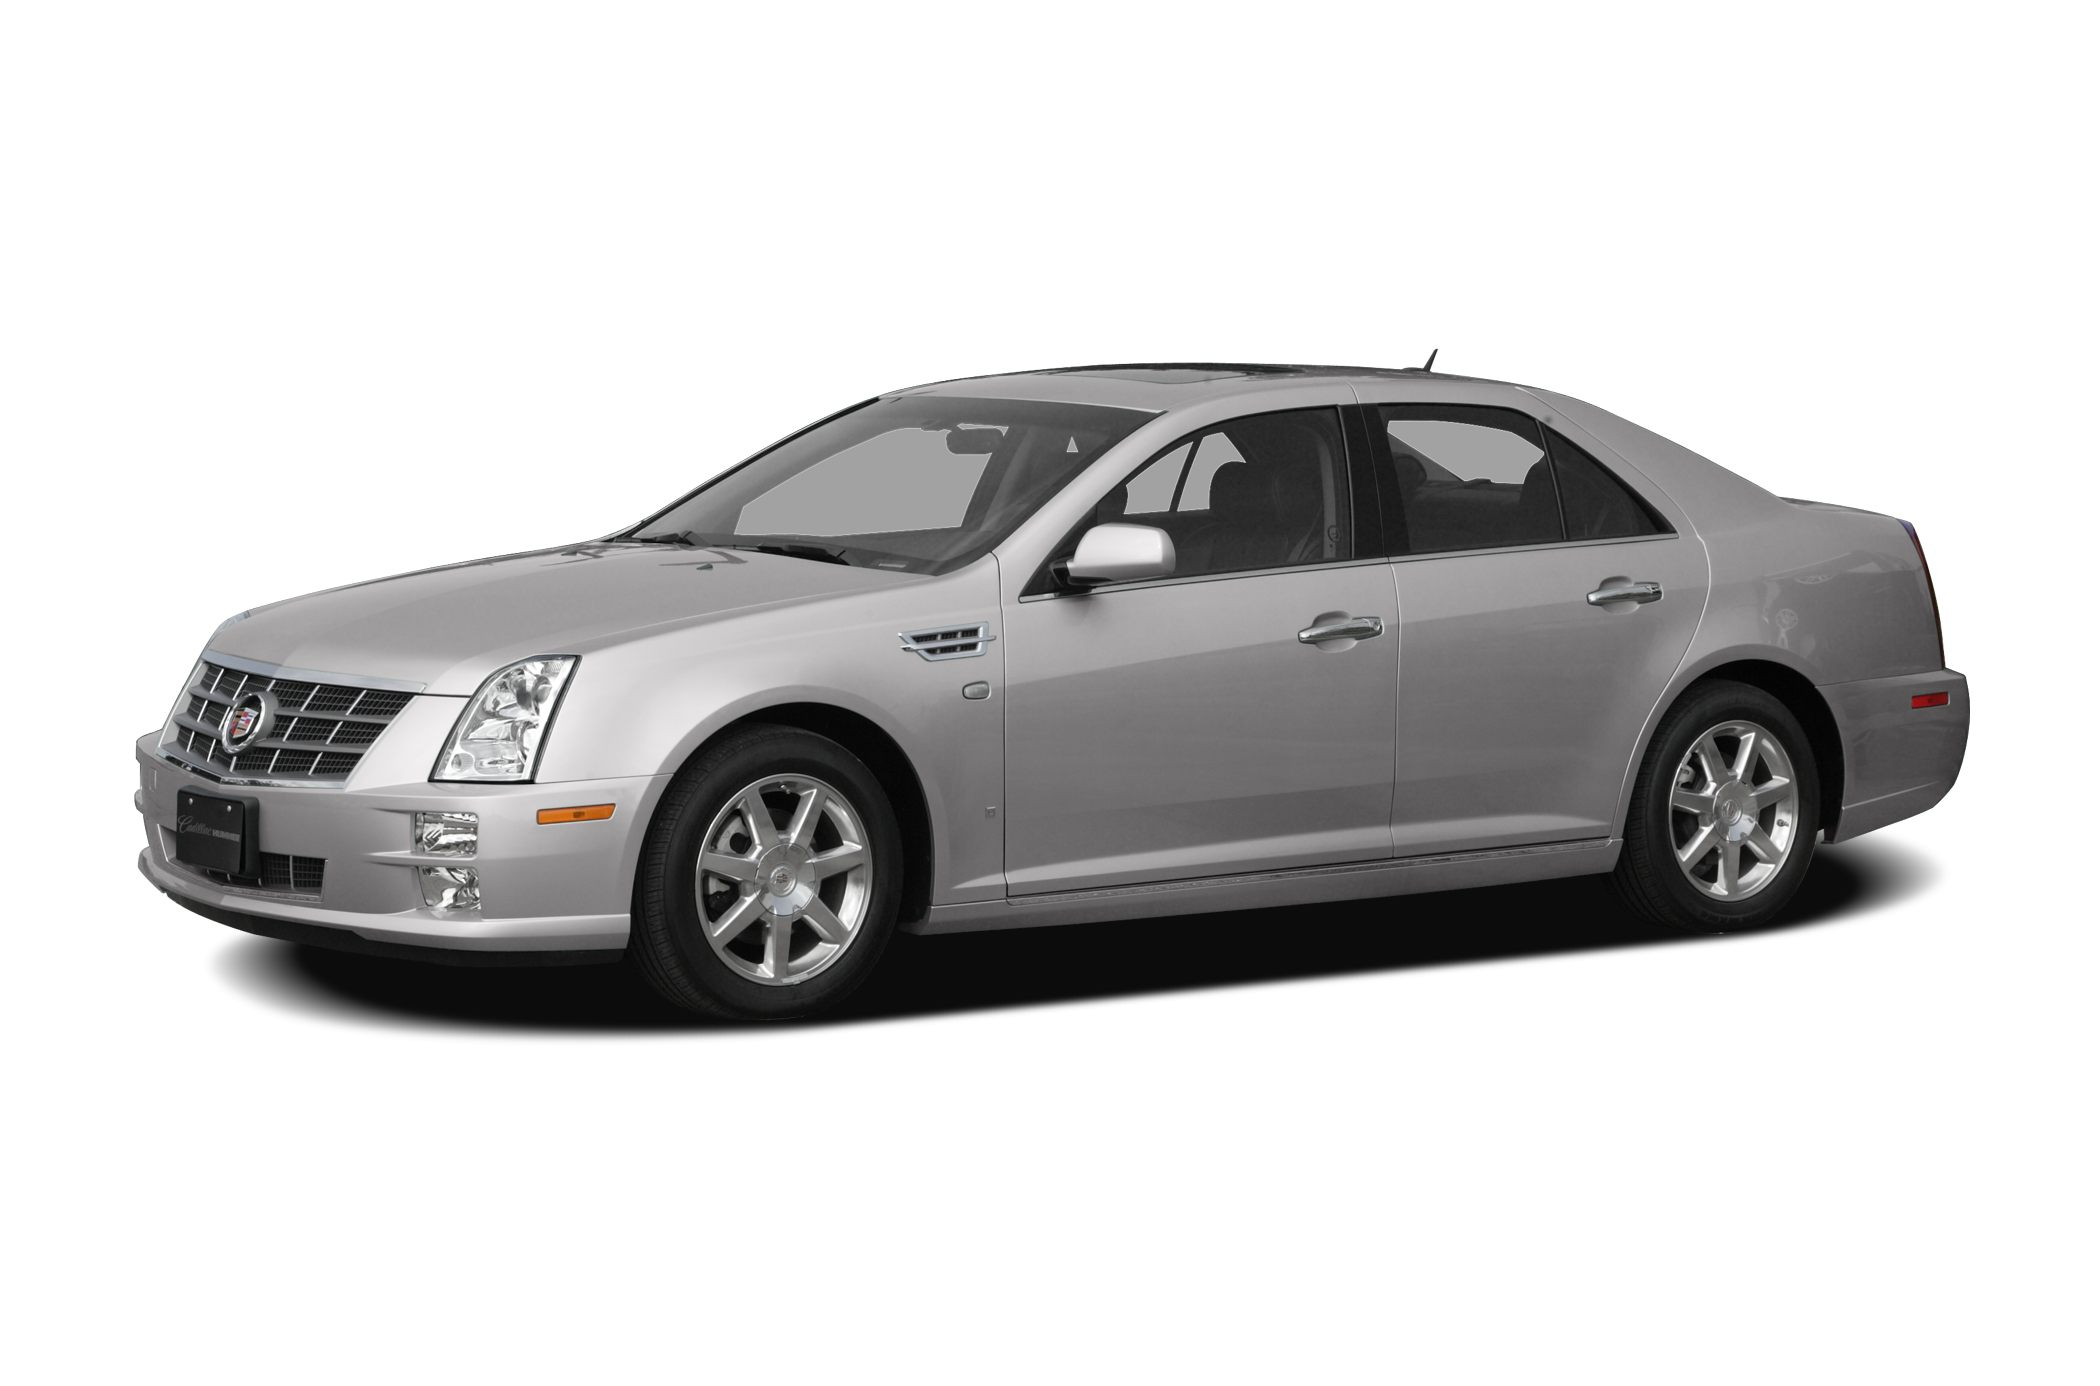 2008 Cadillac STS V6 VEHILCE IS LOCATED  1833 HWY 78 EAST OXFORD AL 36203 866-215-4052 ADDITIONAL